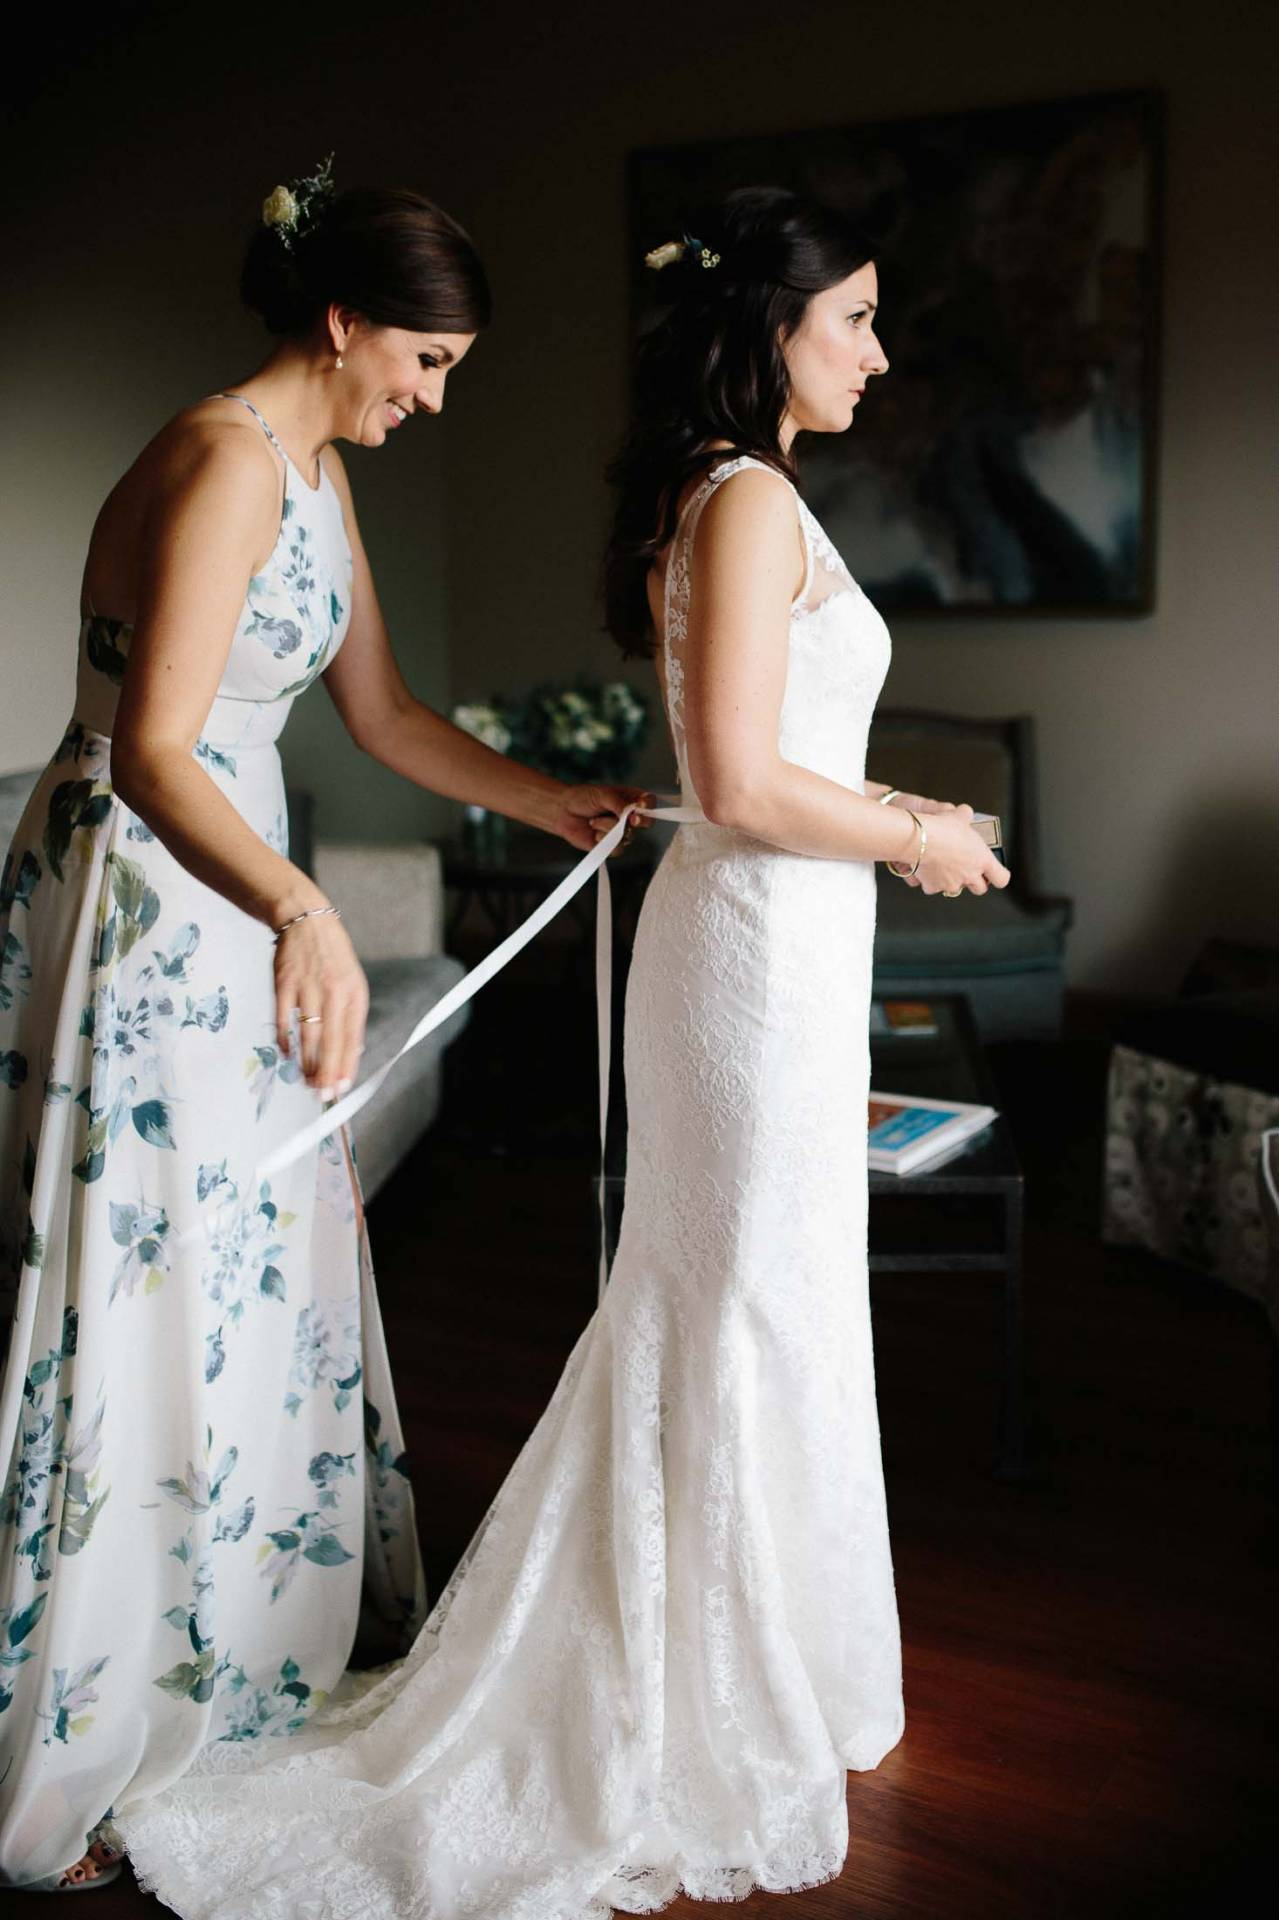 Bride getting dressed with help with sister.